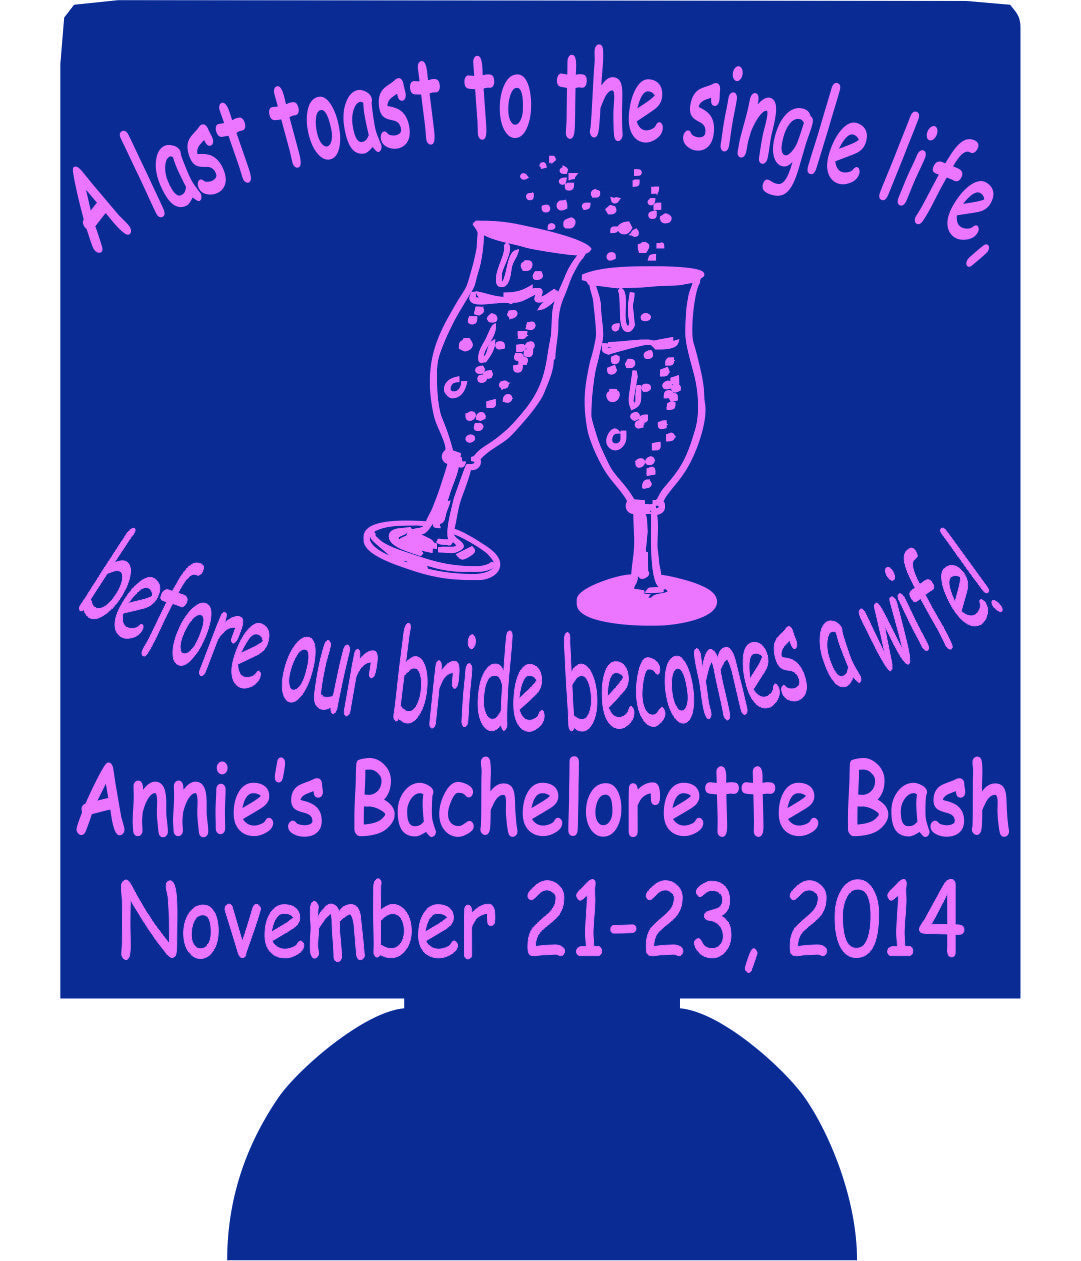 last toast to the single life bachelorette koozie